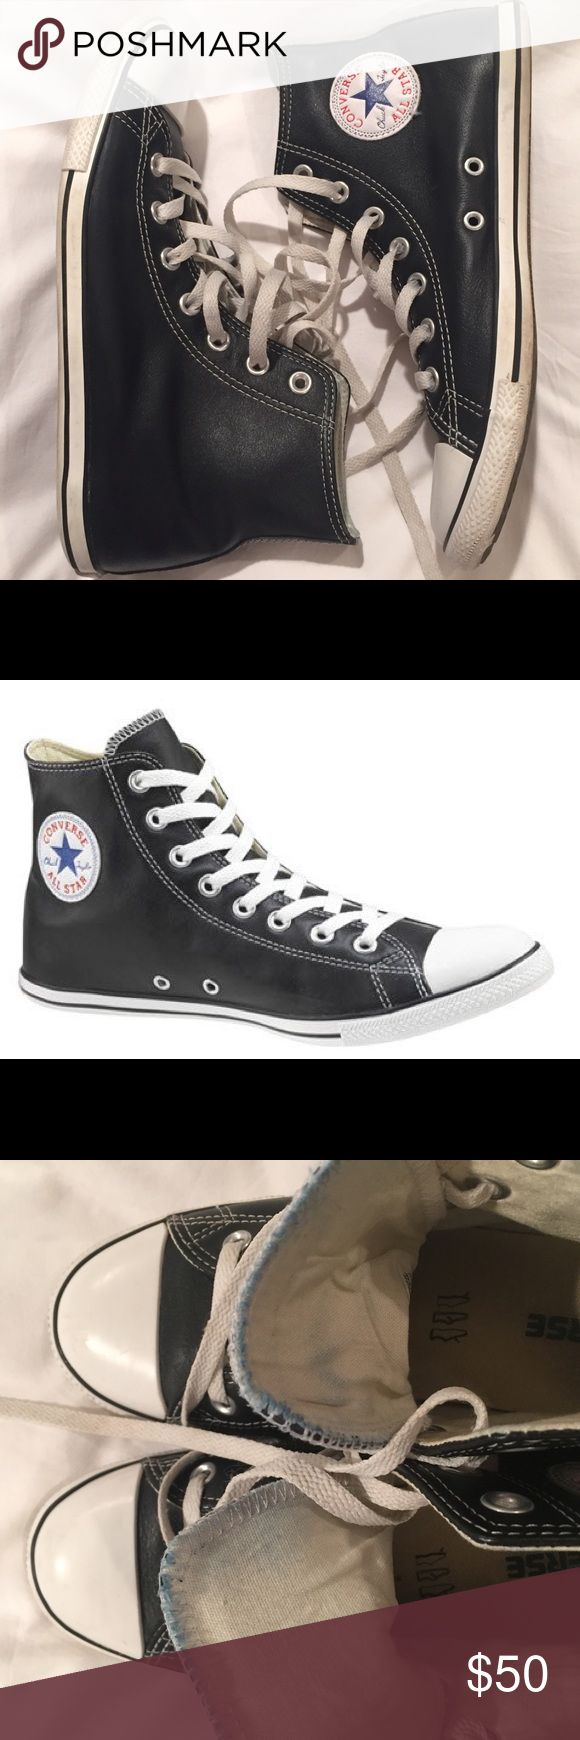 "leather converse high tops SLIM Iconic leather All Star convers sneakers. SLIM sole - rare to get now. Black leather. Unisex. Men6/ Women 8. Very good condition. Little worn ""all star"" on a back and slight blue fading inside from jeans - see the pics. They were worn to Madonna's concert in NYC. Converse Shoes Sneakers"